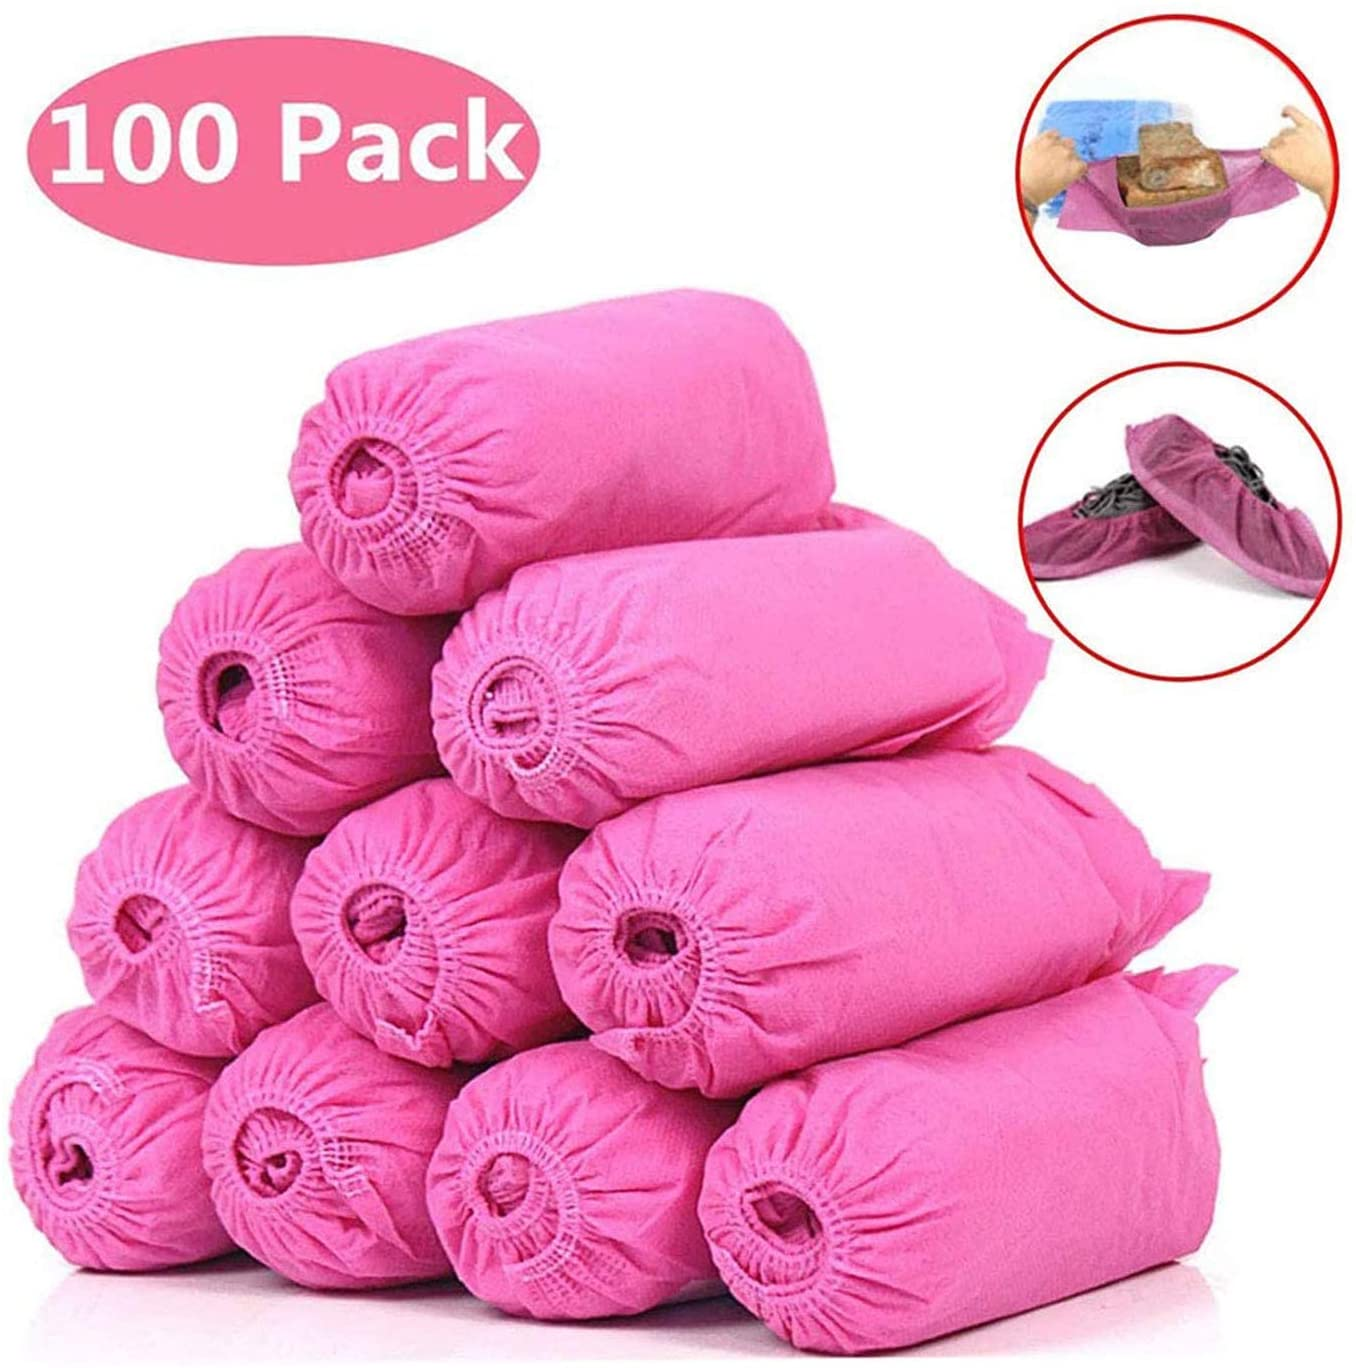 Shoe Covers Disposable Non Slip 100 Pack(50 Pairs) Shoe Booties Protectors Covers for Construction, Workplace, Indoor Carpet Floor Protection, One Size Fits All (Pink)